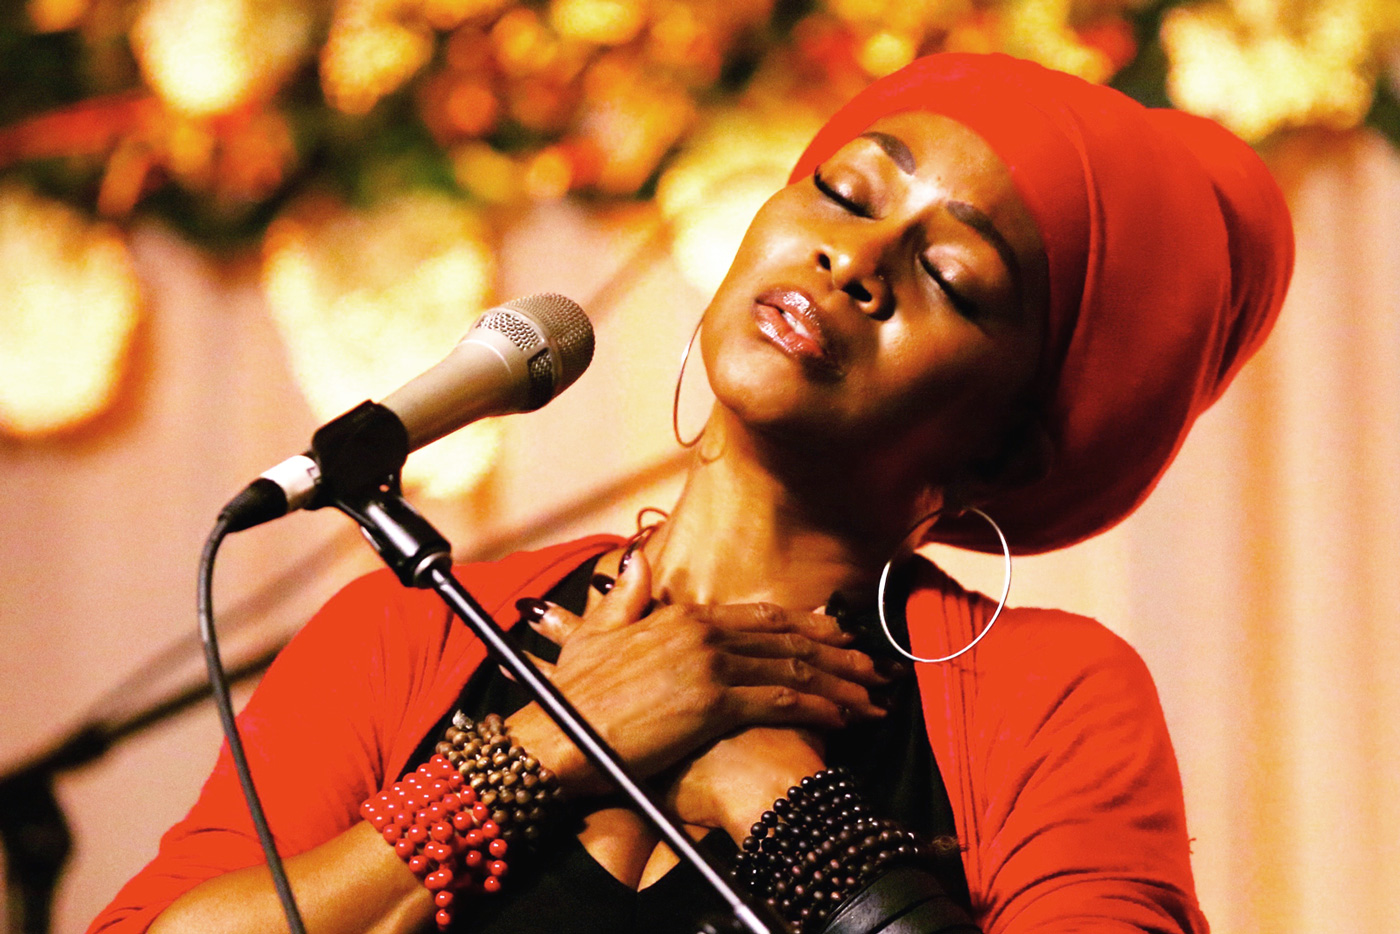 "CC WHITE   C.C. White's concerts have won her worldwide recognition as ""The Queen of Soul Kirtan,"" enrapturing audiences like no other. Her critically acclaimed CD ""This IS Soul Kirtan!"" debuted at the top of the iTunes World Chart & is the first of its kind to feature a blend of Kirtan, Soul, Blues, Reggae, Gospel, R&B and Jazz. She's worked with Lenny Kravitz, Sting, Neil Young, Ben Harper, Charlie Musselwhite, Jackson Browne, Crosby, Stills & Nash, Joe Cocker, and Jason Mraz to name a few. Get ready for soul-freeing, foot-stomping, heart-opening Soul Kirtan!   www.soulkirtan.com"